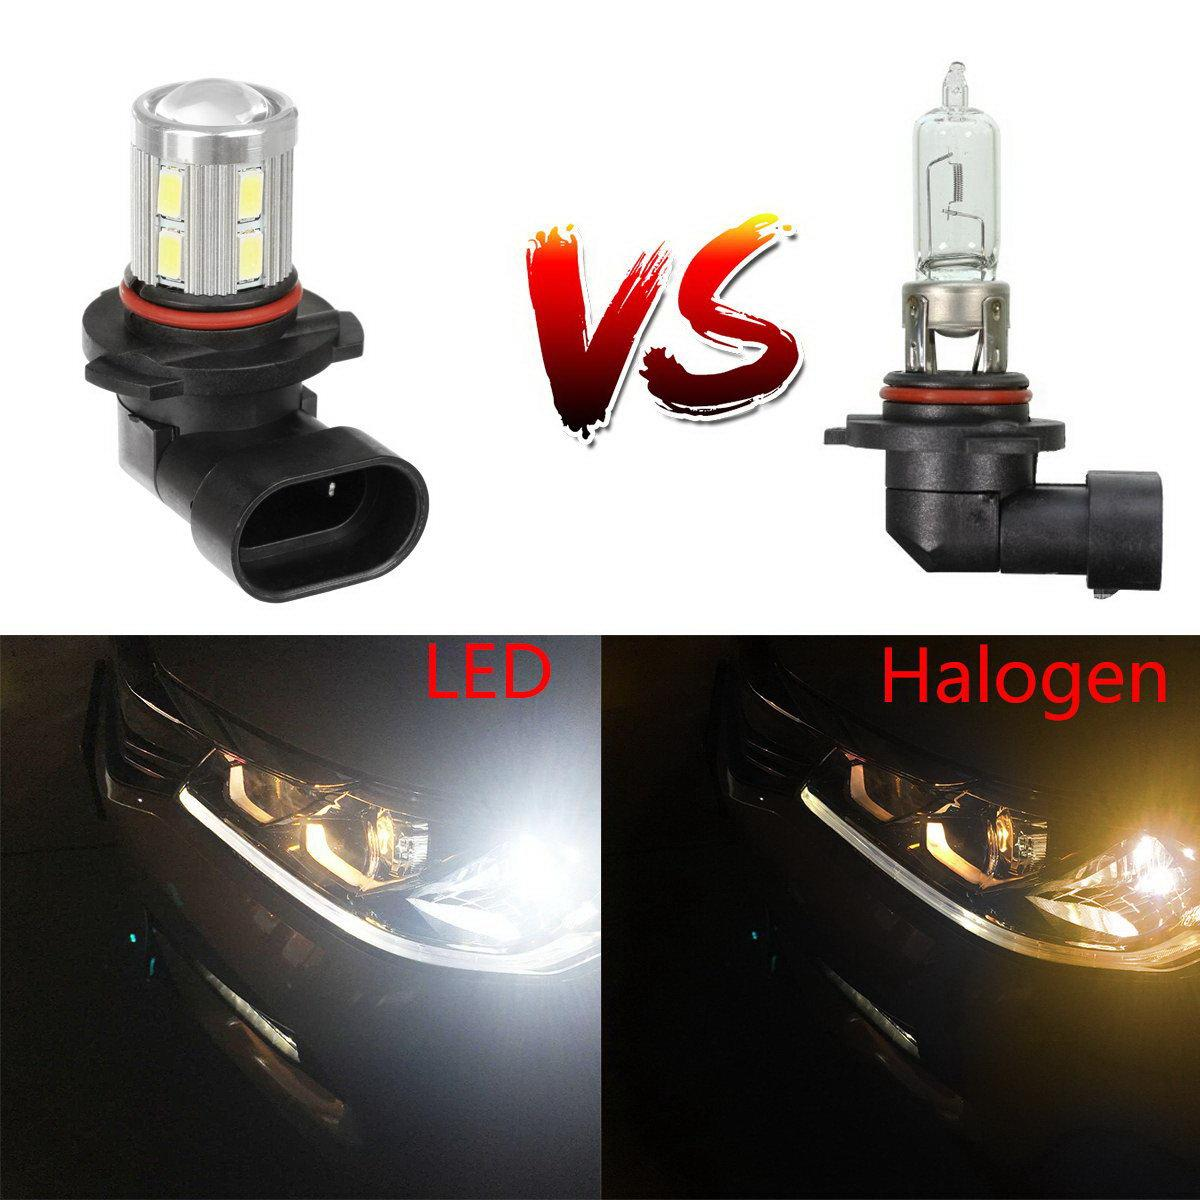 H10 Light Bulb: 2 X High Power 9145 9140 H10 Bulbs For Driving Fog Light White CREE Q5 SMD  LED,Lighting